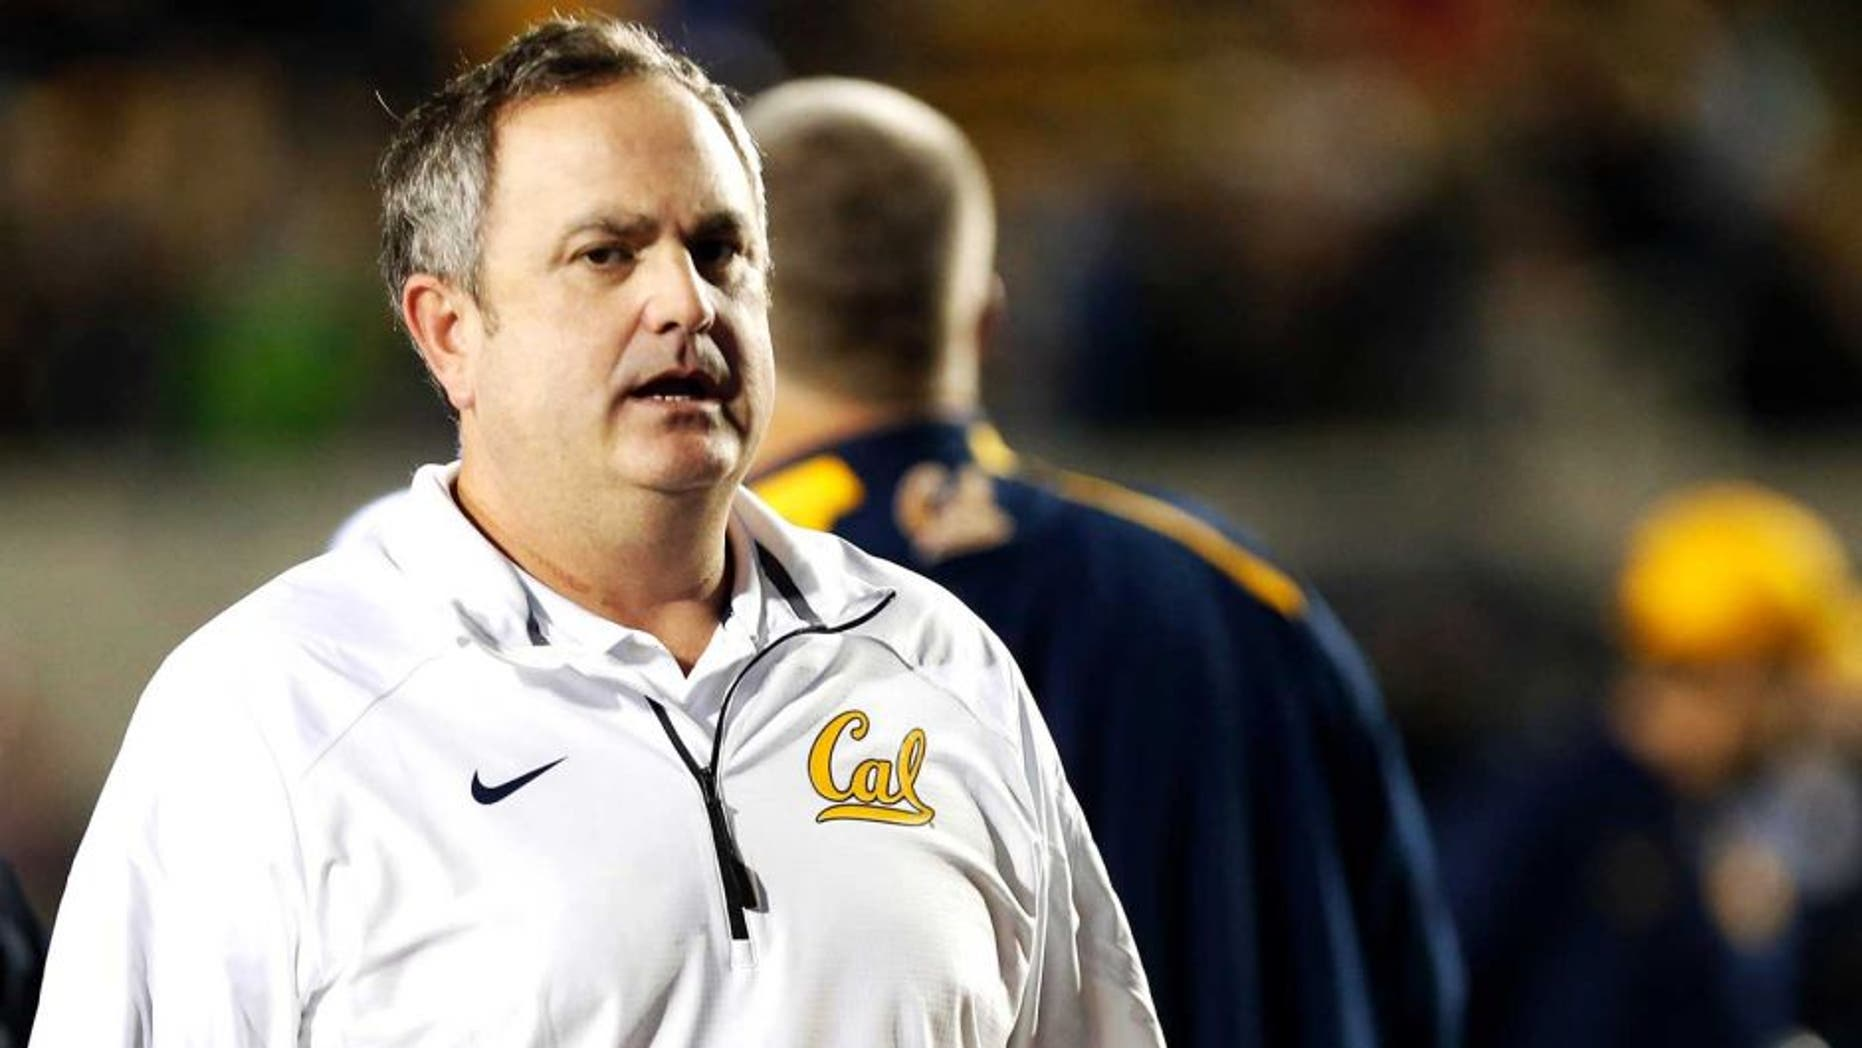 Nov 29, 2014; Berkeley, CA, USA; California Golden Bears head coach Sonny Dykes leaves the field after the loss against the Brigham Young Cougars at Memorial Stadium. The Brigham Young Cougars defeated the California Golden Bears 42-35. Mandatory Credit: Kelley L Cox-USA TODAY Sports